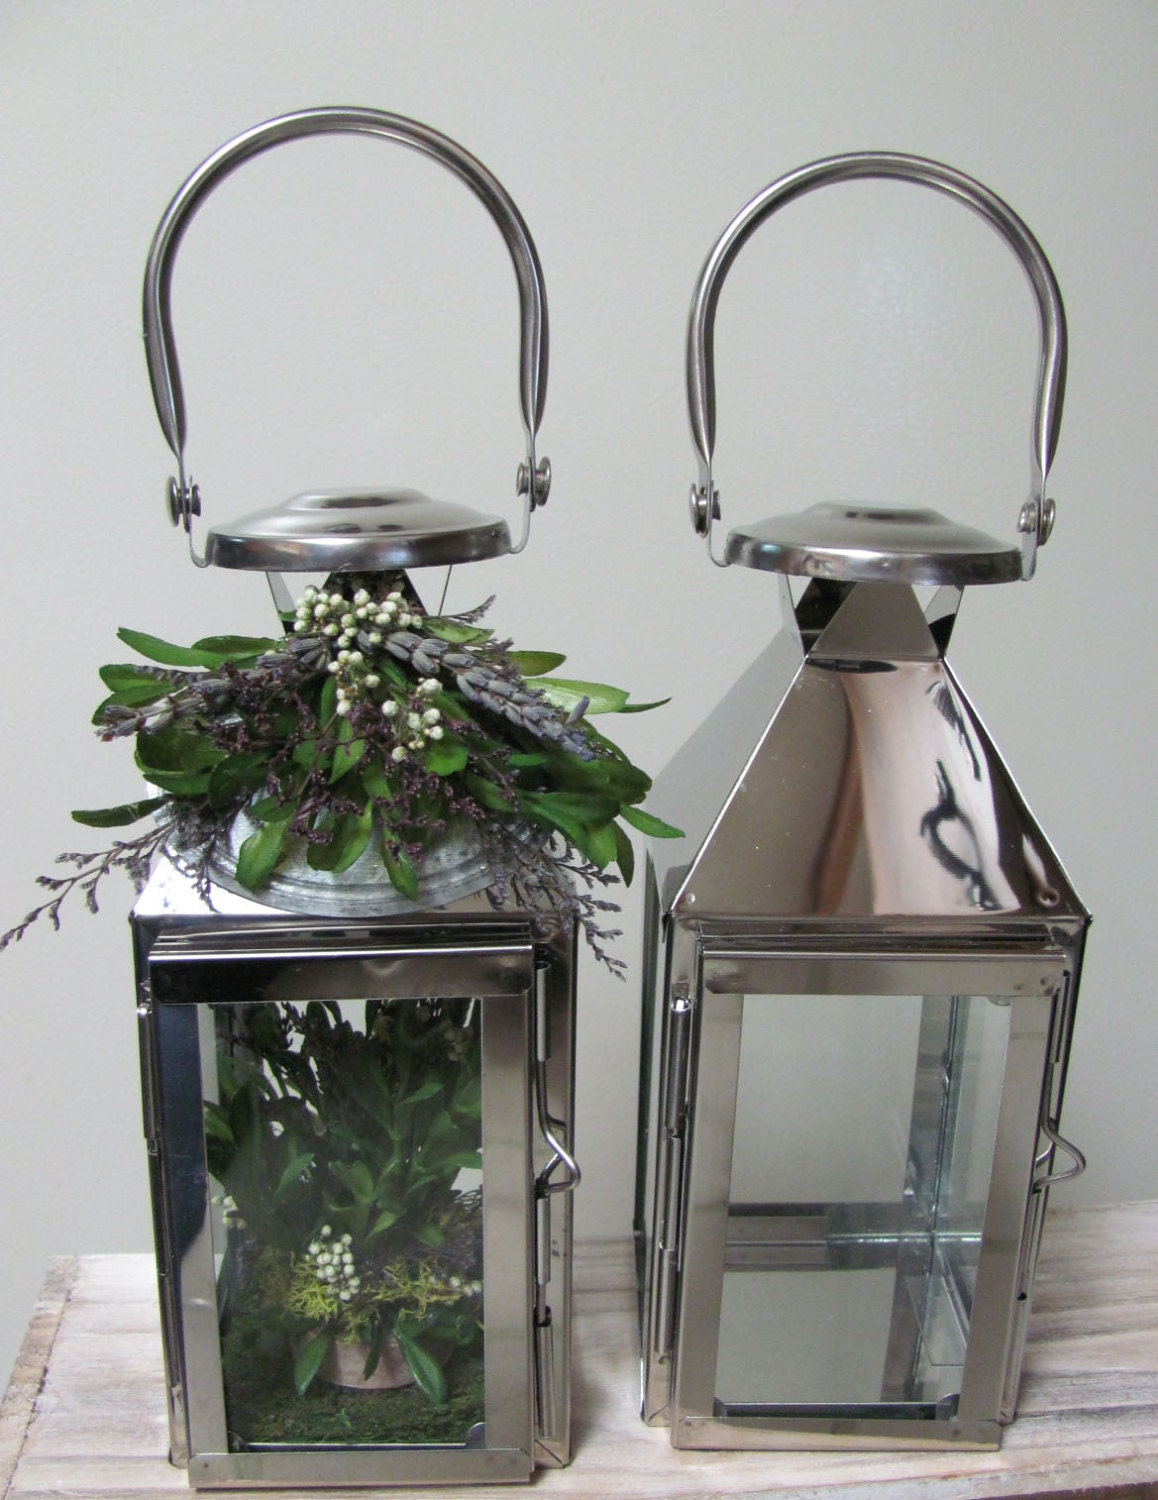 Small Lanterns that Hang Used At Weddings for Ceremony or Reception Decor